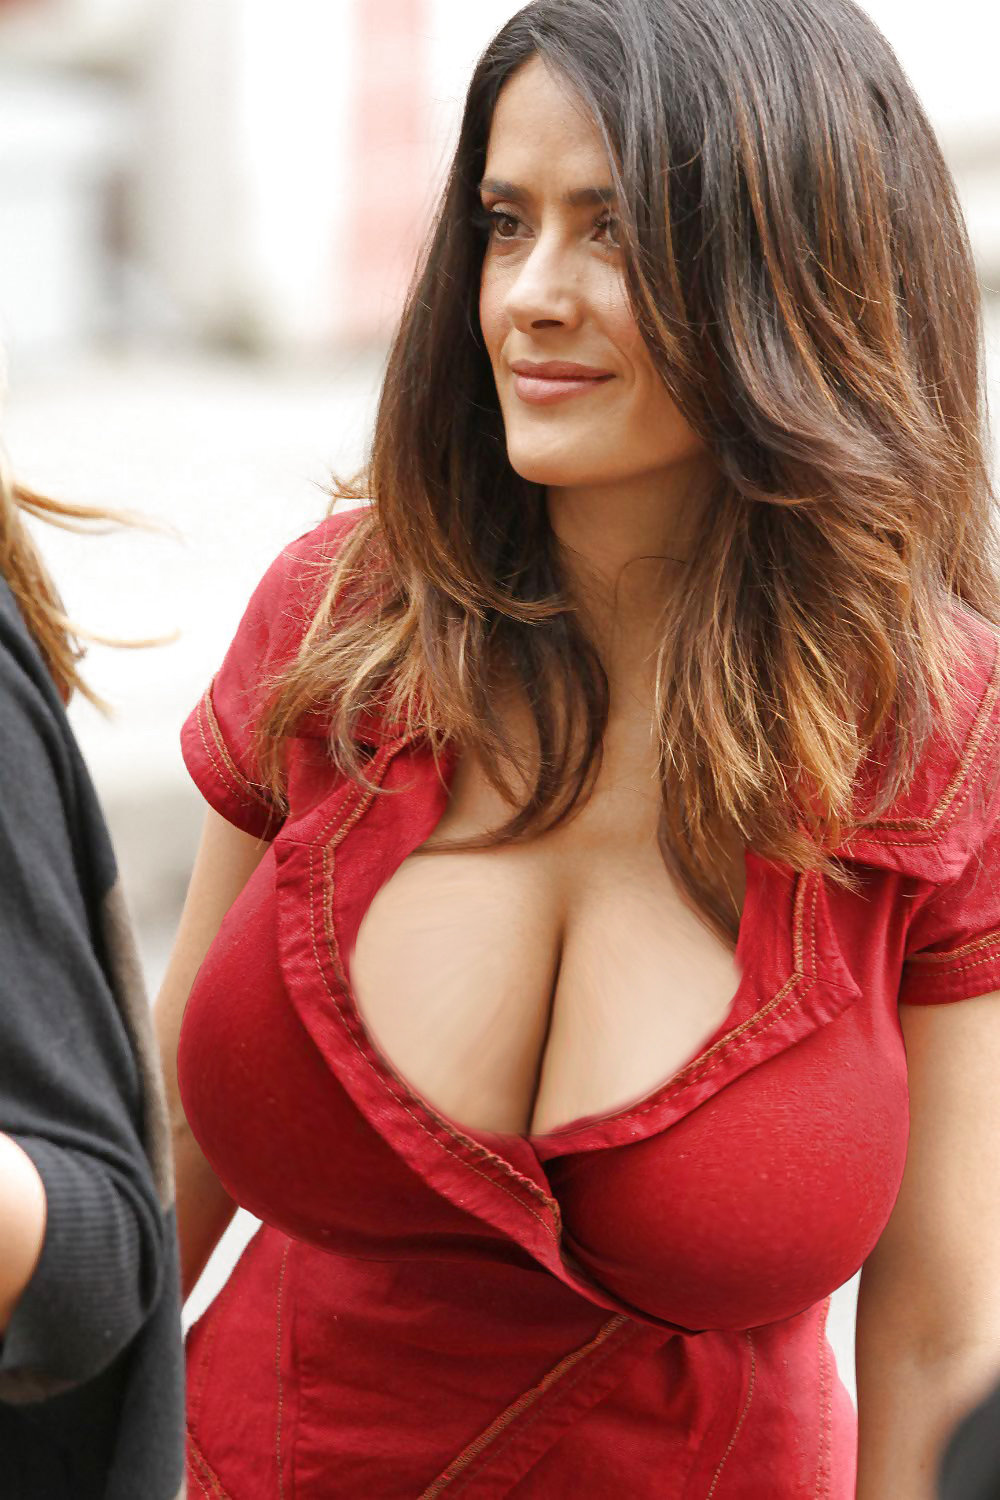 Big hot breast woman — pic 14